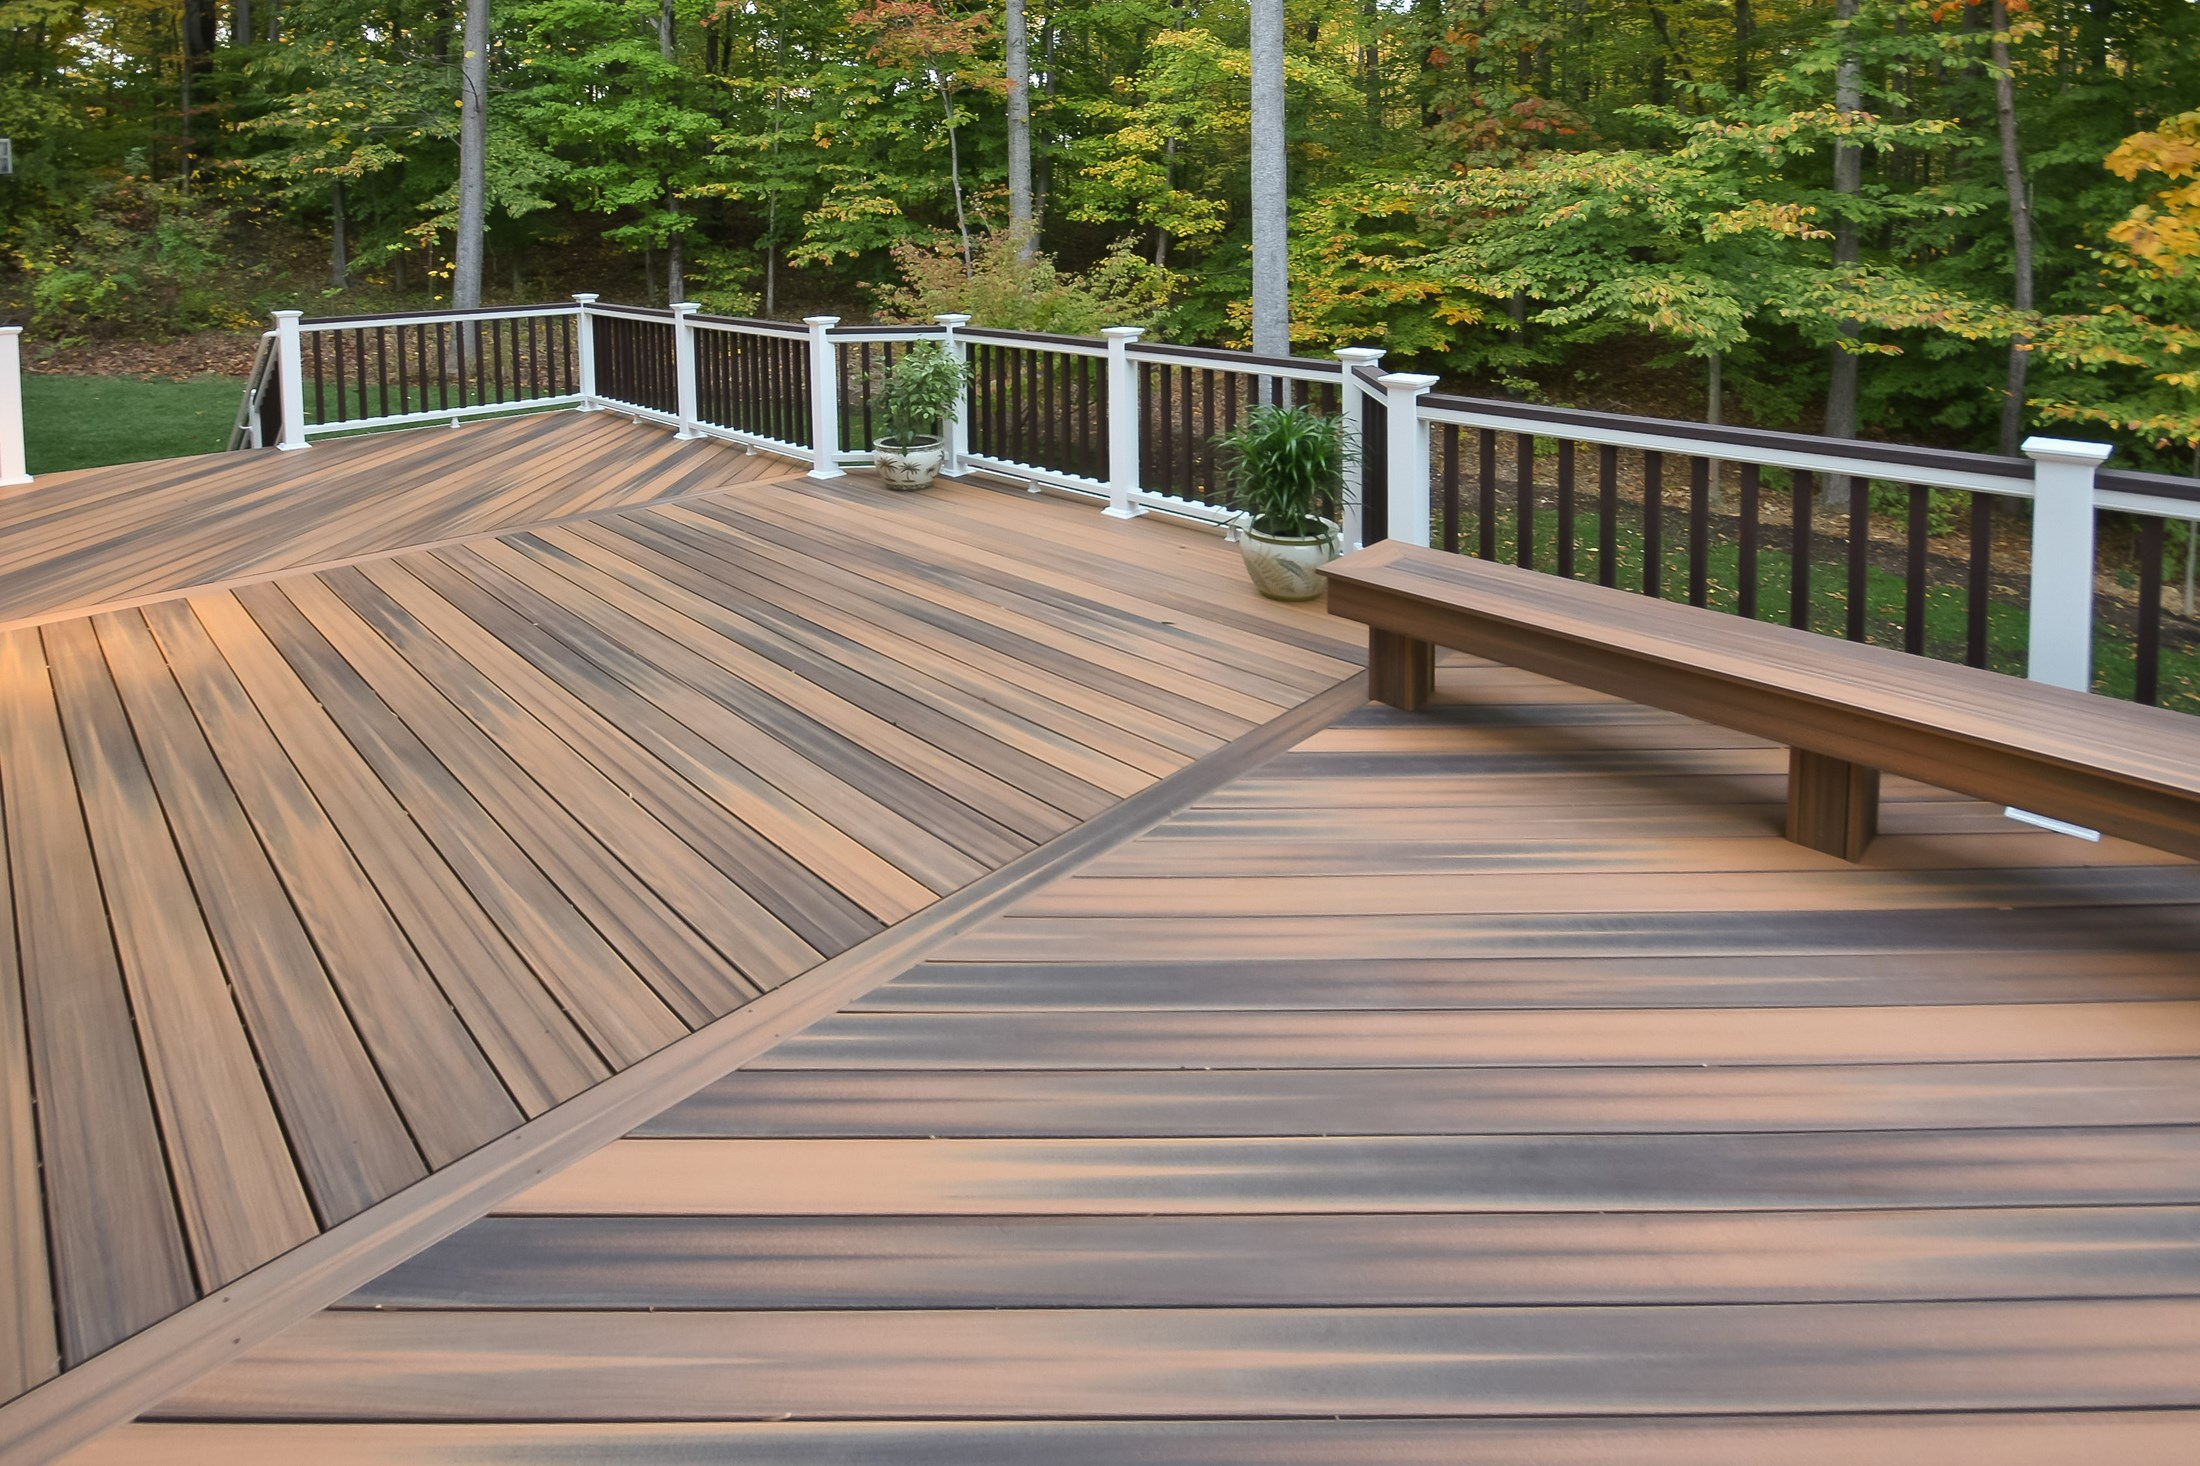 Decks Controlling Decking Seams inside size 2200 X 1466 - Decks Ideas